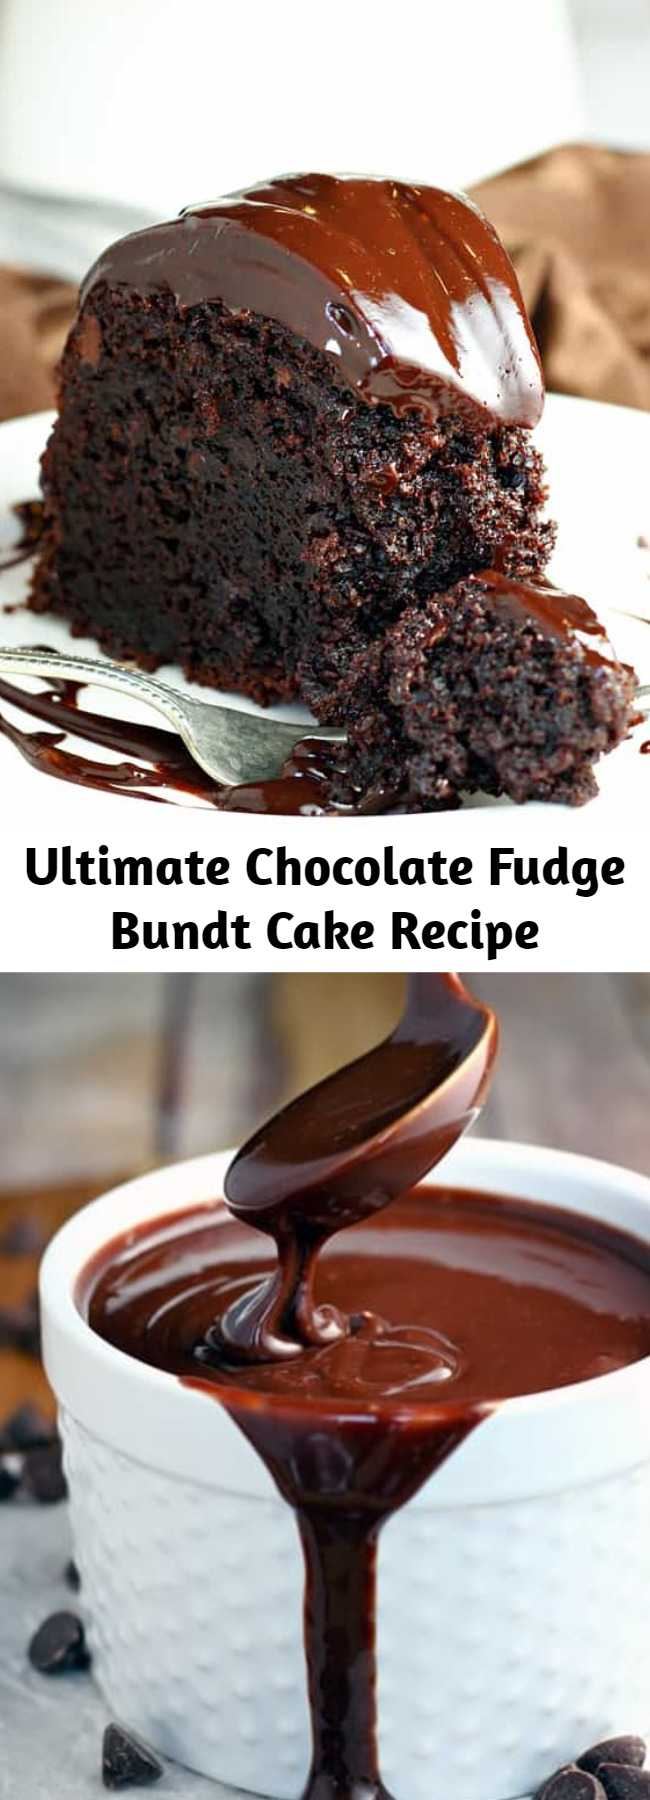 Ultimate Chocolate Fudge Bundt Cake Recipe - This amazing chocolate cake starts with a cake mix and couldn't be easier or more decadent.